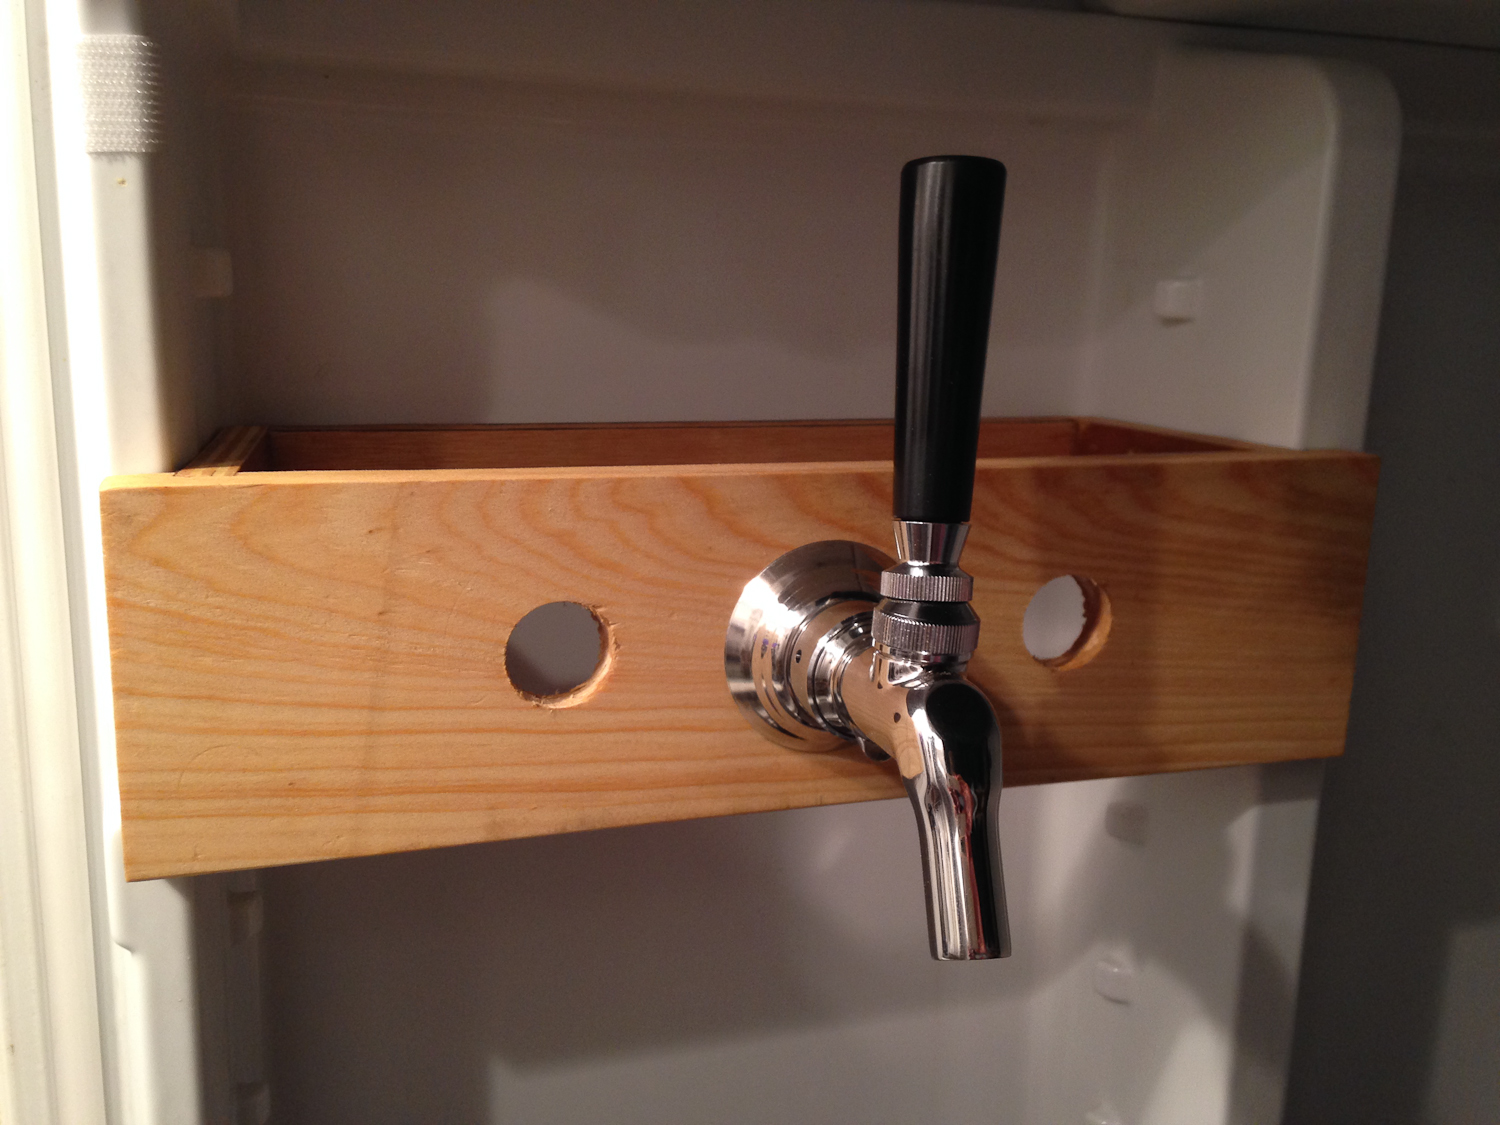 Picture of Make a Beer Tap Mount to Hang Inside the Refrigerator Door.